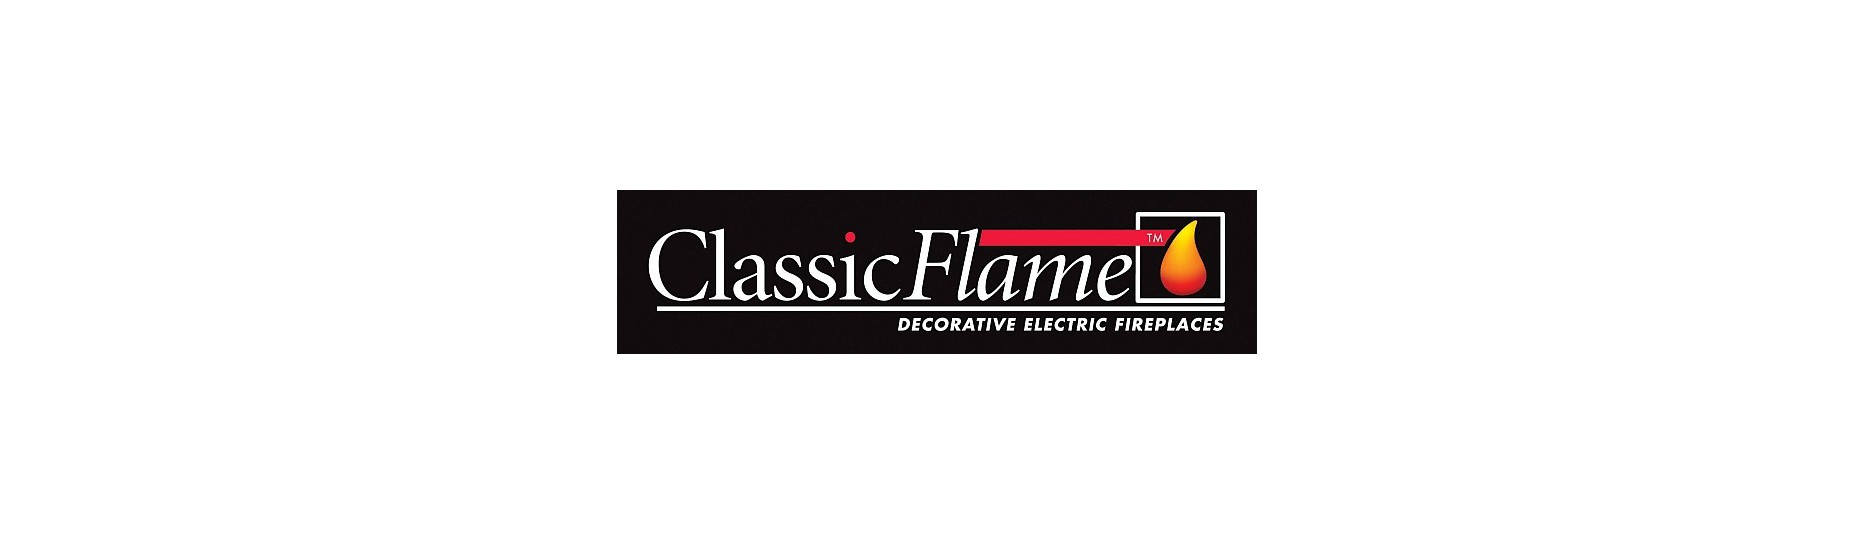 Krby Classic Flame